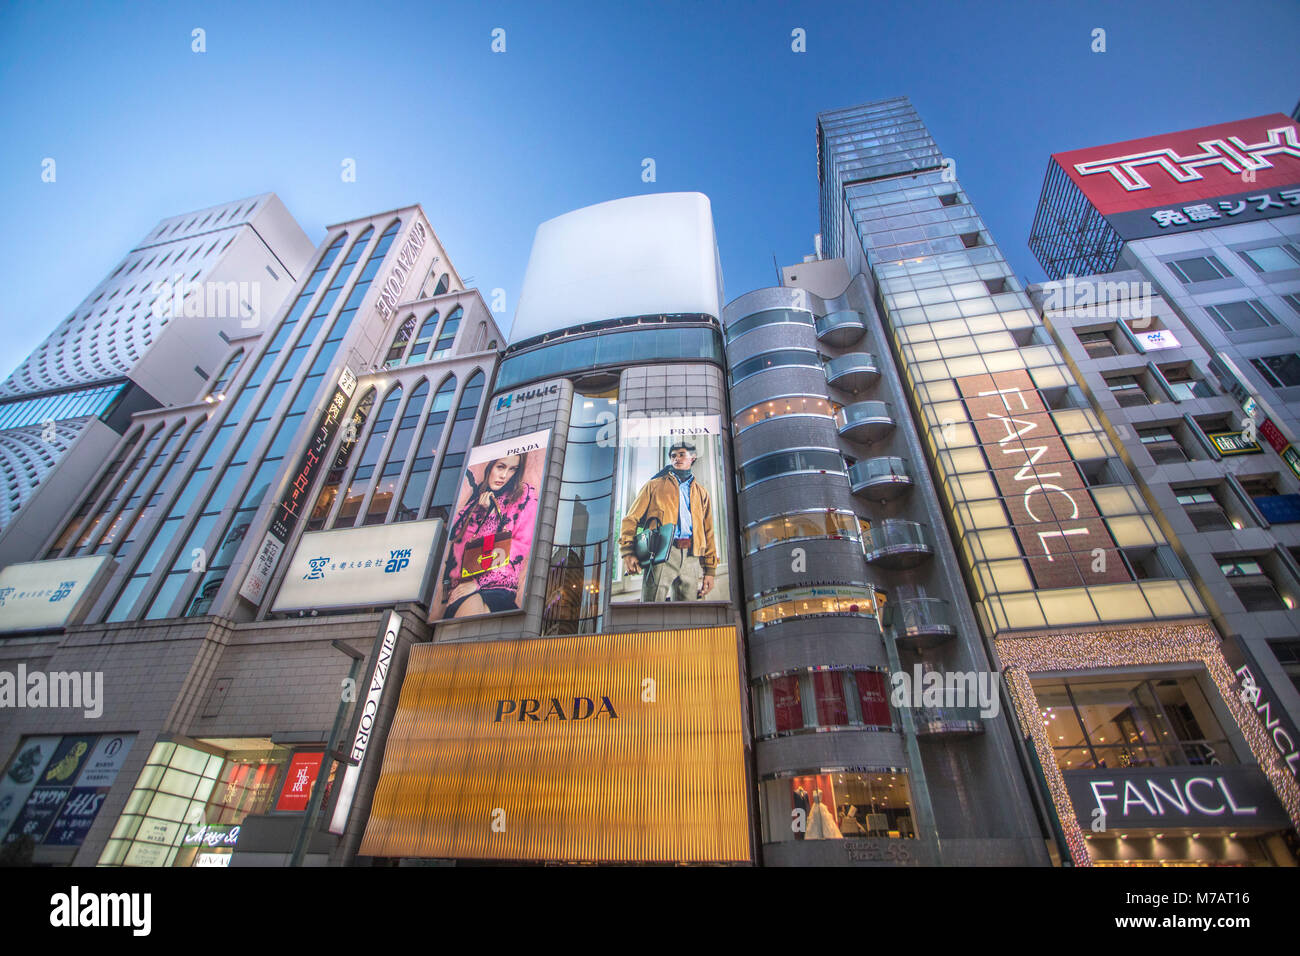 Japan, Tokyo City, Ginza District, Chuo Avenue - Stock Image